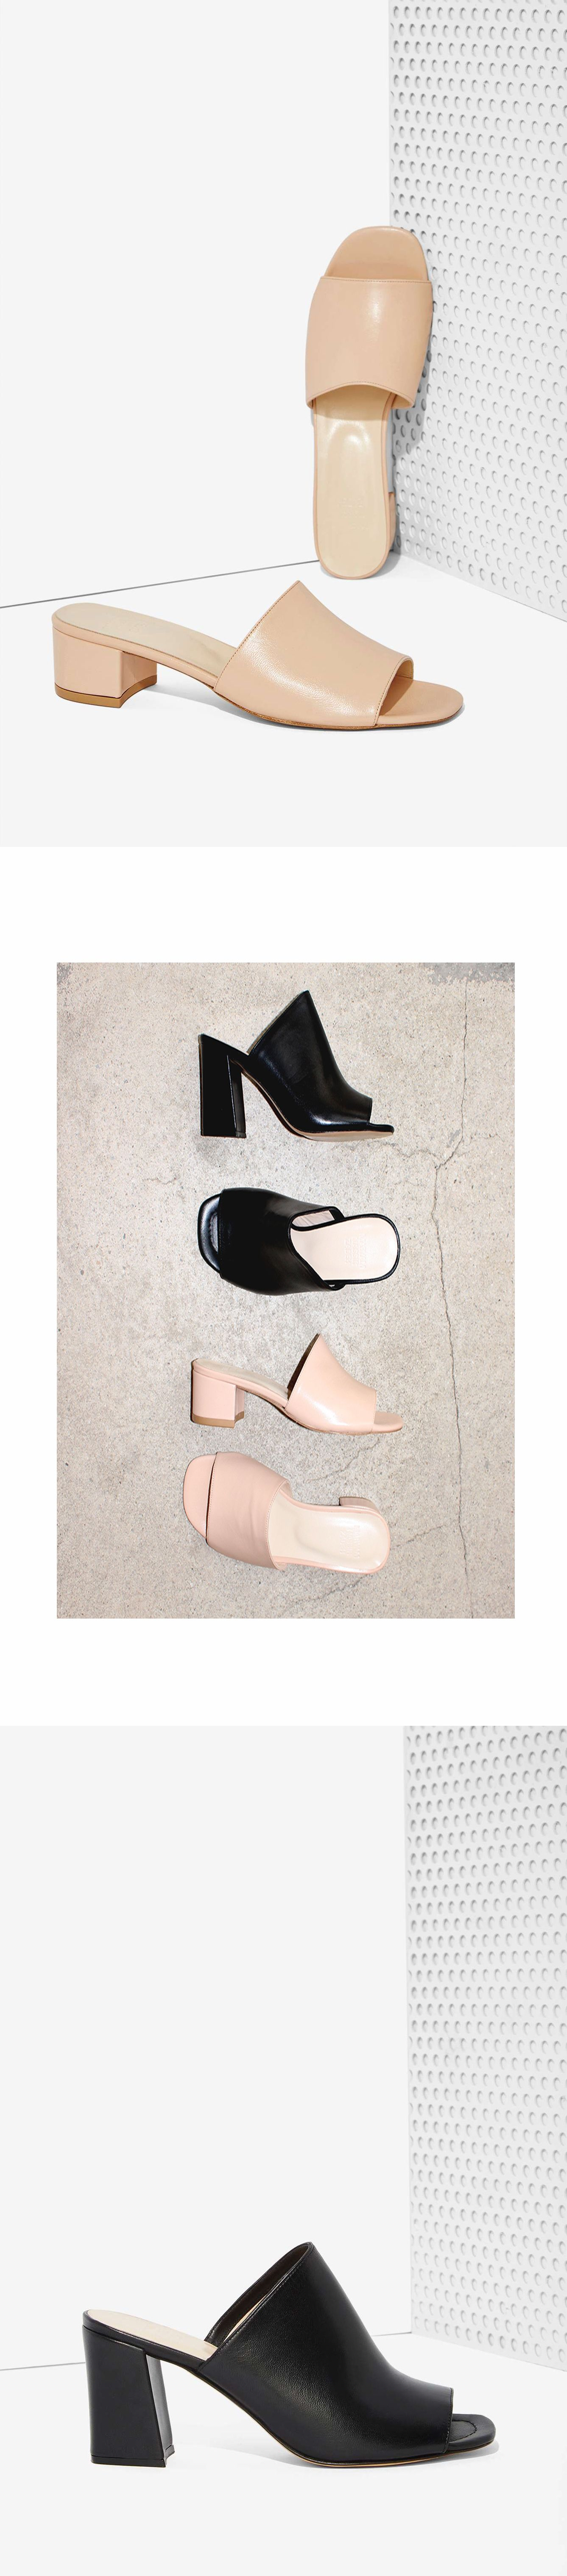 Must-have mules from Maryam Nassir Zadeh, Dolce Vita, Jeffrey Campbell and more - just in at Nasty Gal!